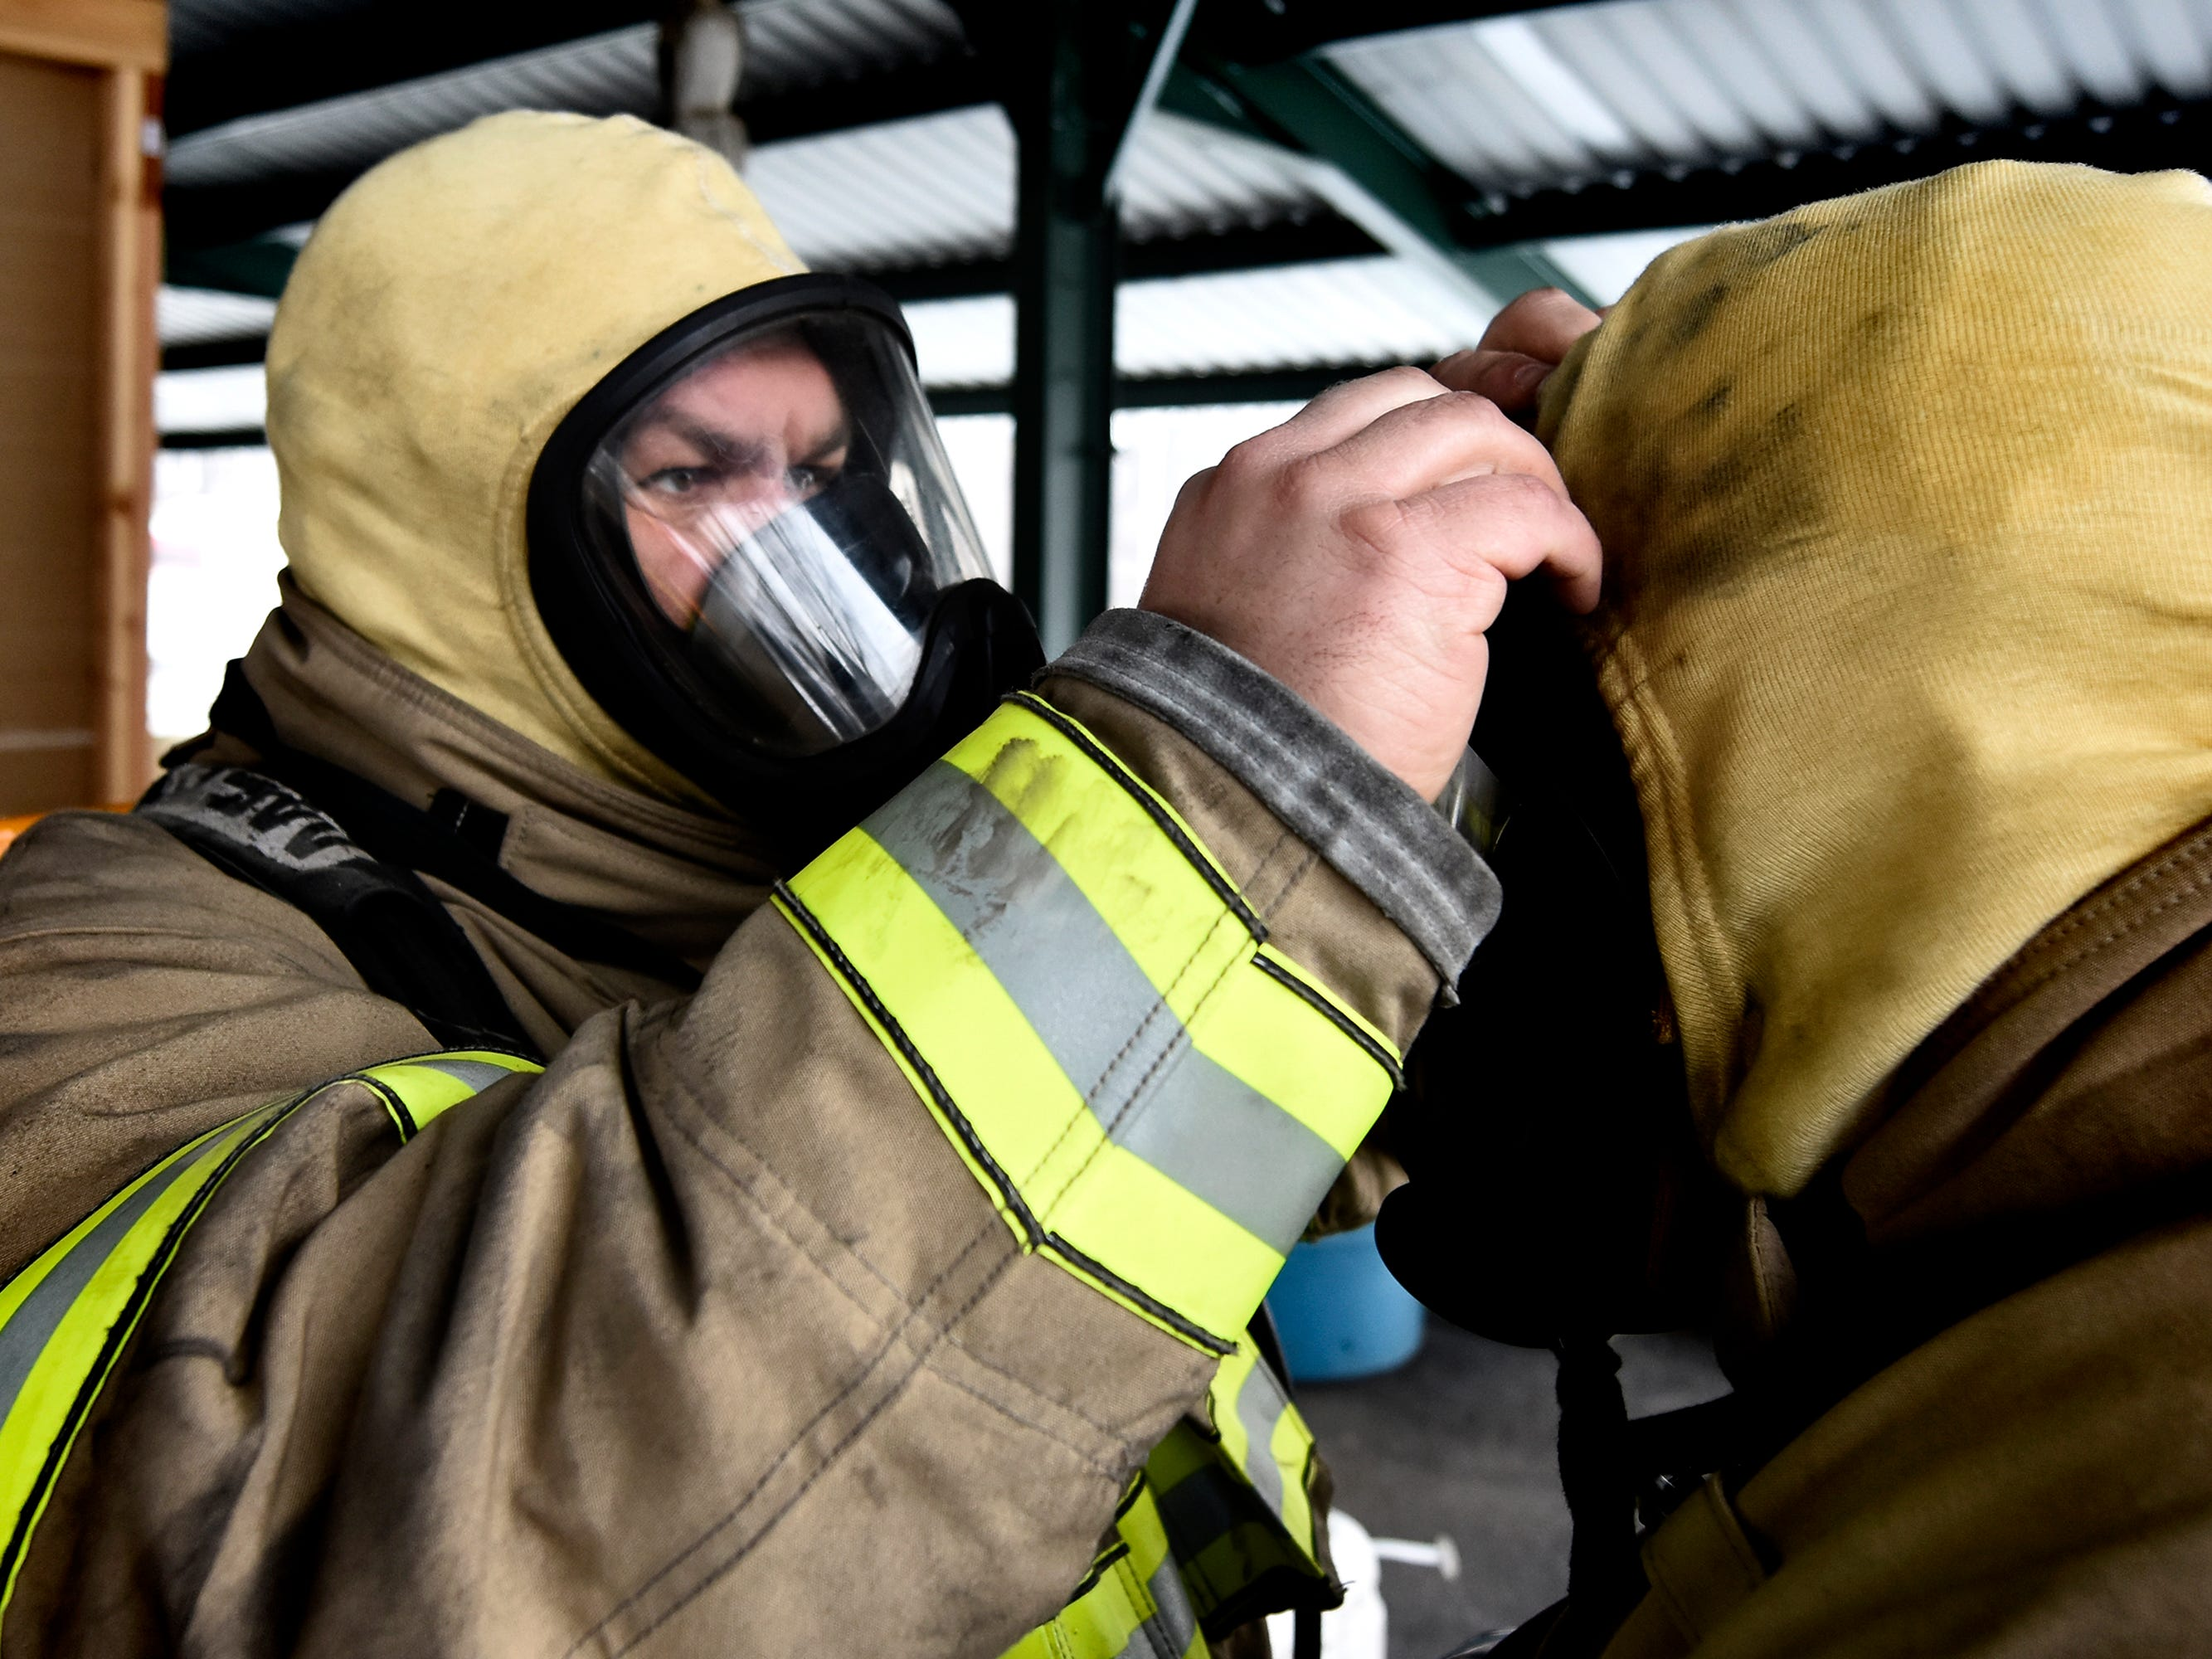 York County Prison Sergeant Jeff Baldwin, left, helps Sergeant James Benn with his gear while preparing for a fire scenario at the York County Fire School during training there Friday, March 8, 2019. Members of the prison's 30-member Fire Emergency Response Team were completing a 40-hour fire training course at the school. The FERT team is designed to control fire emergencies onsite prior to the arrival of firefighters. Bill Kalina photo